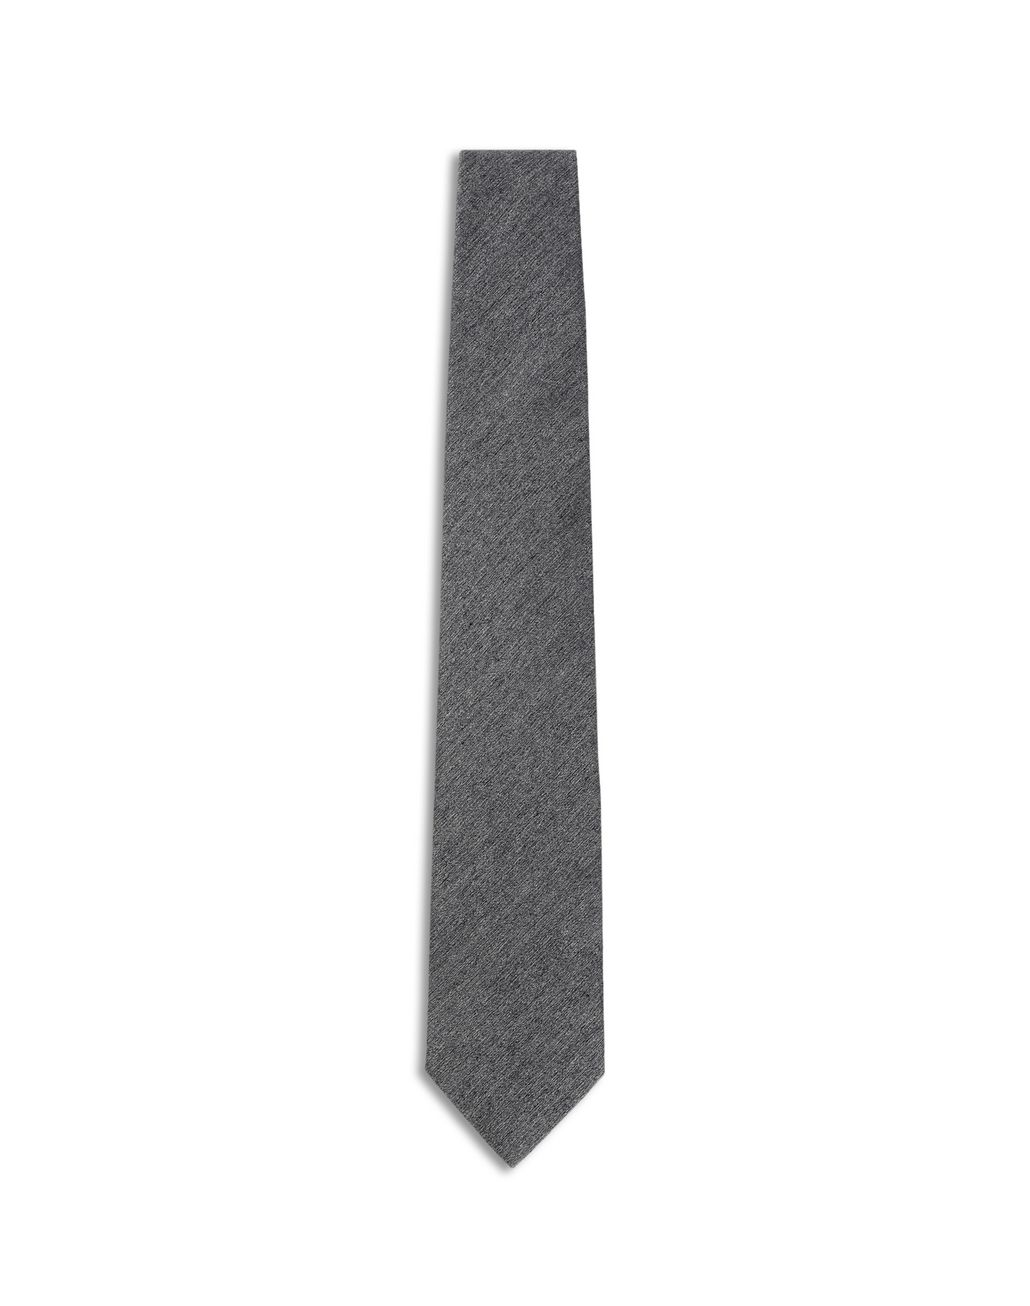 BRIONI Cravate gris graphite Cravate [*** pickupInStoreShippingNotGuaranteed_info ***] f